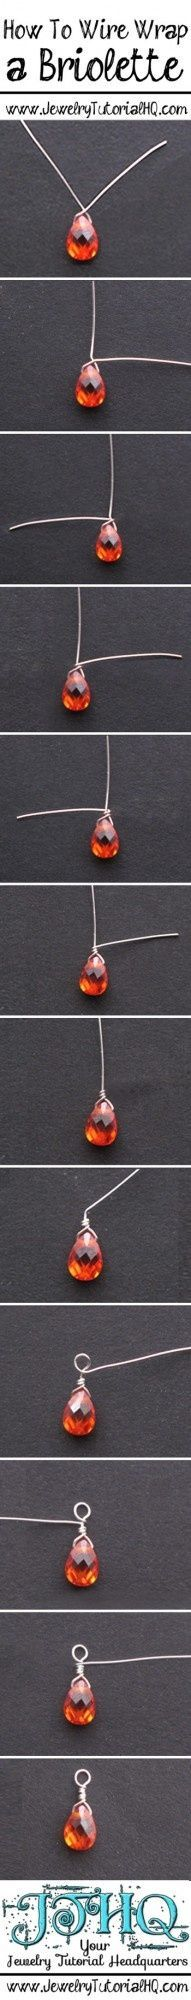 how to wire wrap a briolette step by step tutorial {+ video}